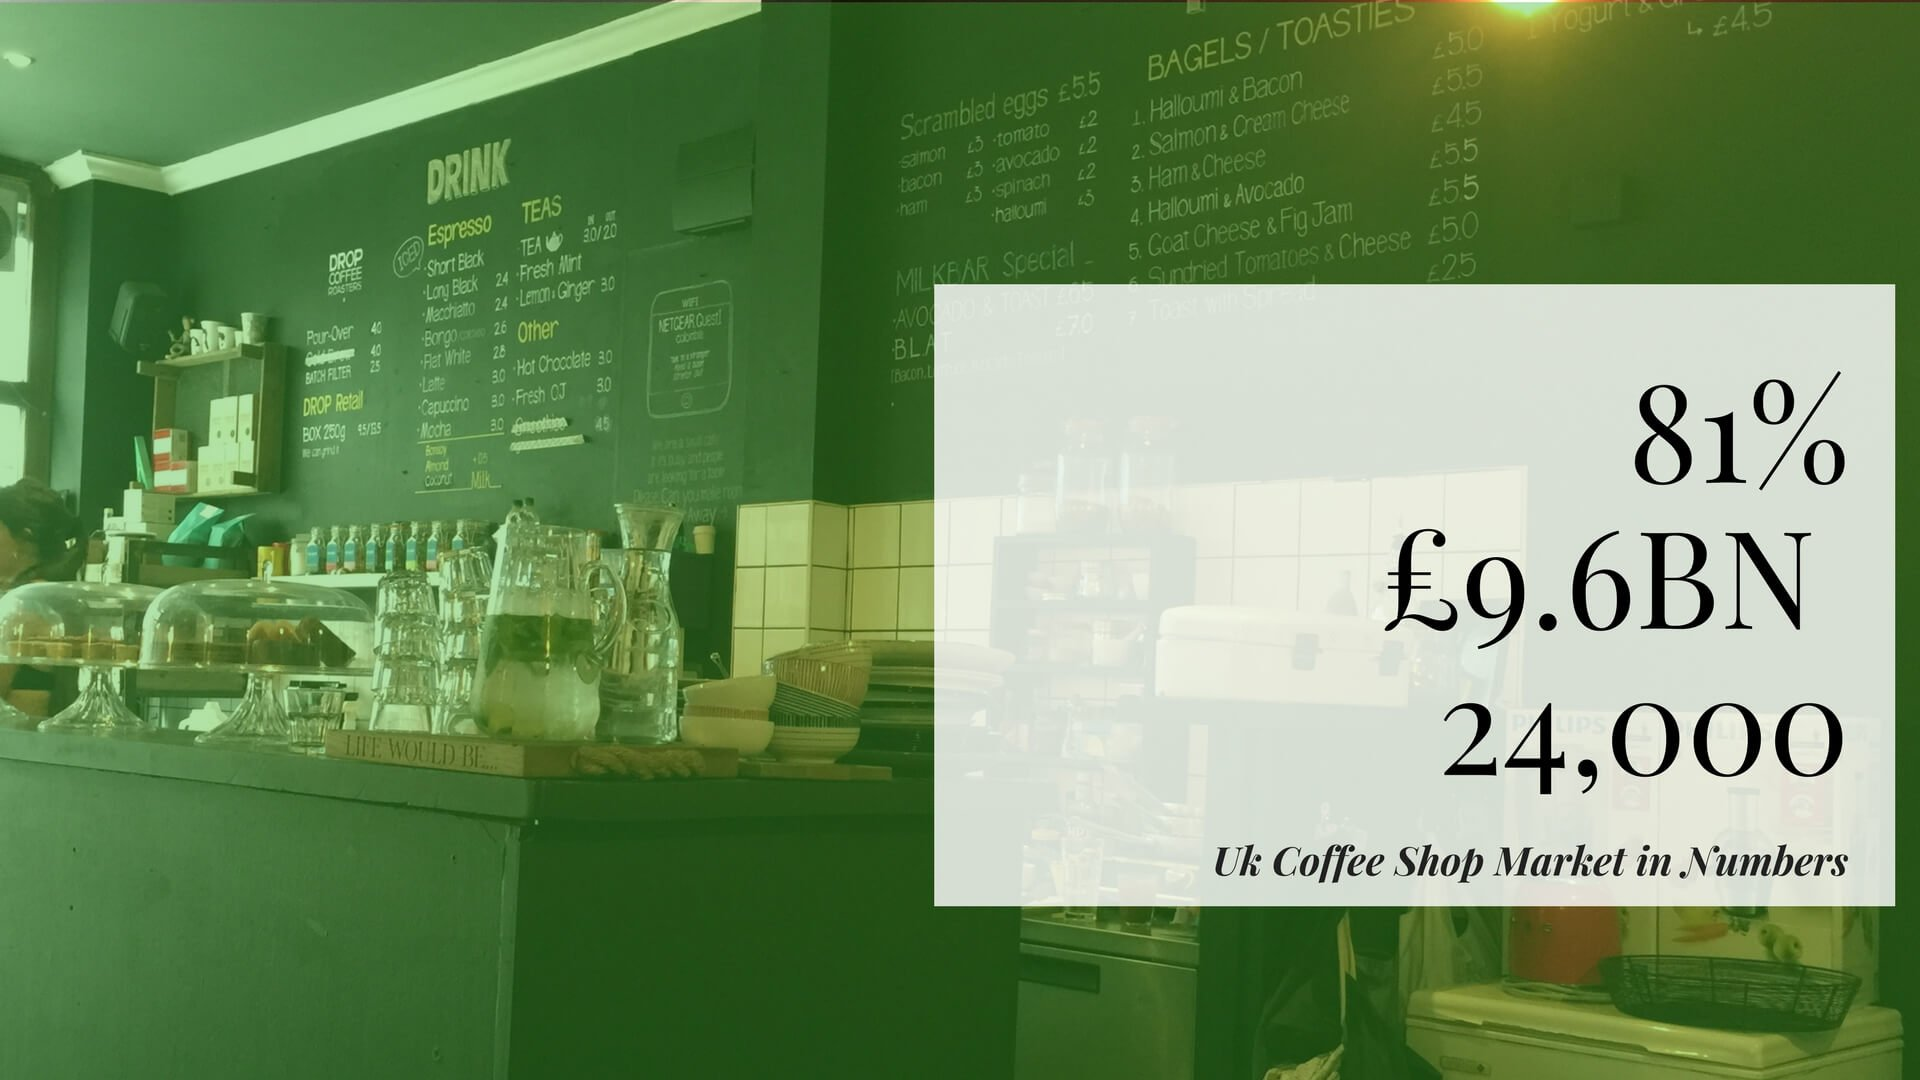 UK Coffee Shop Market 2018